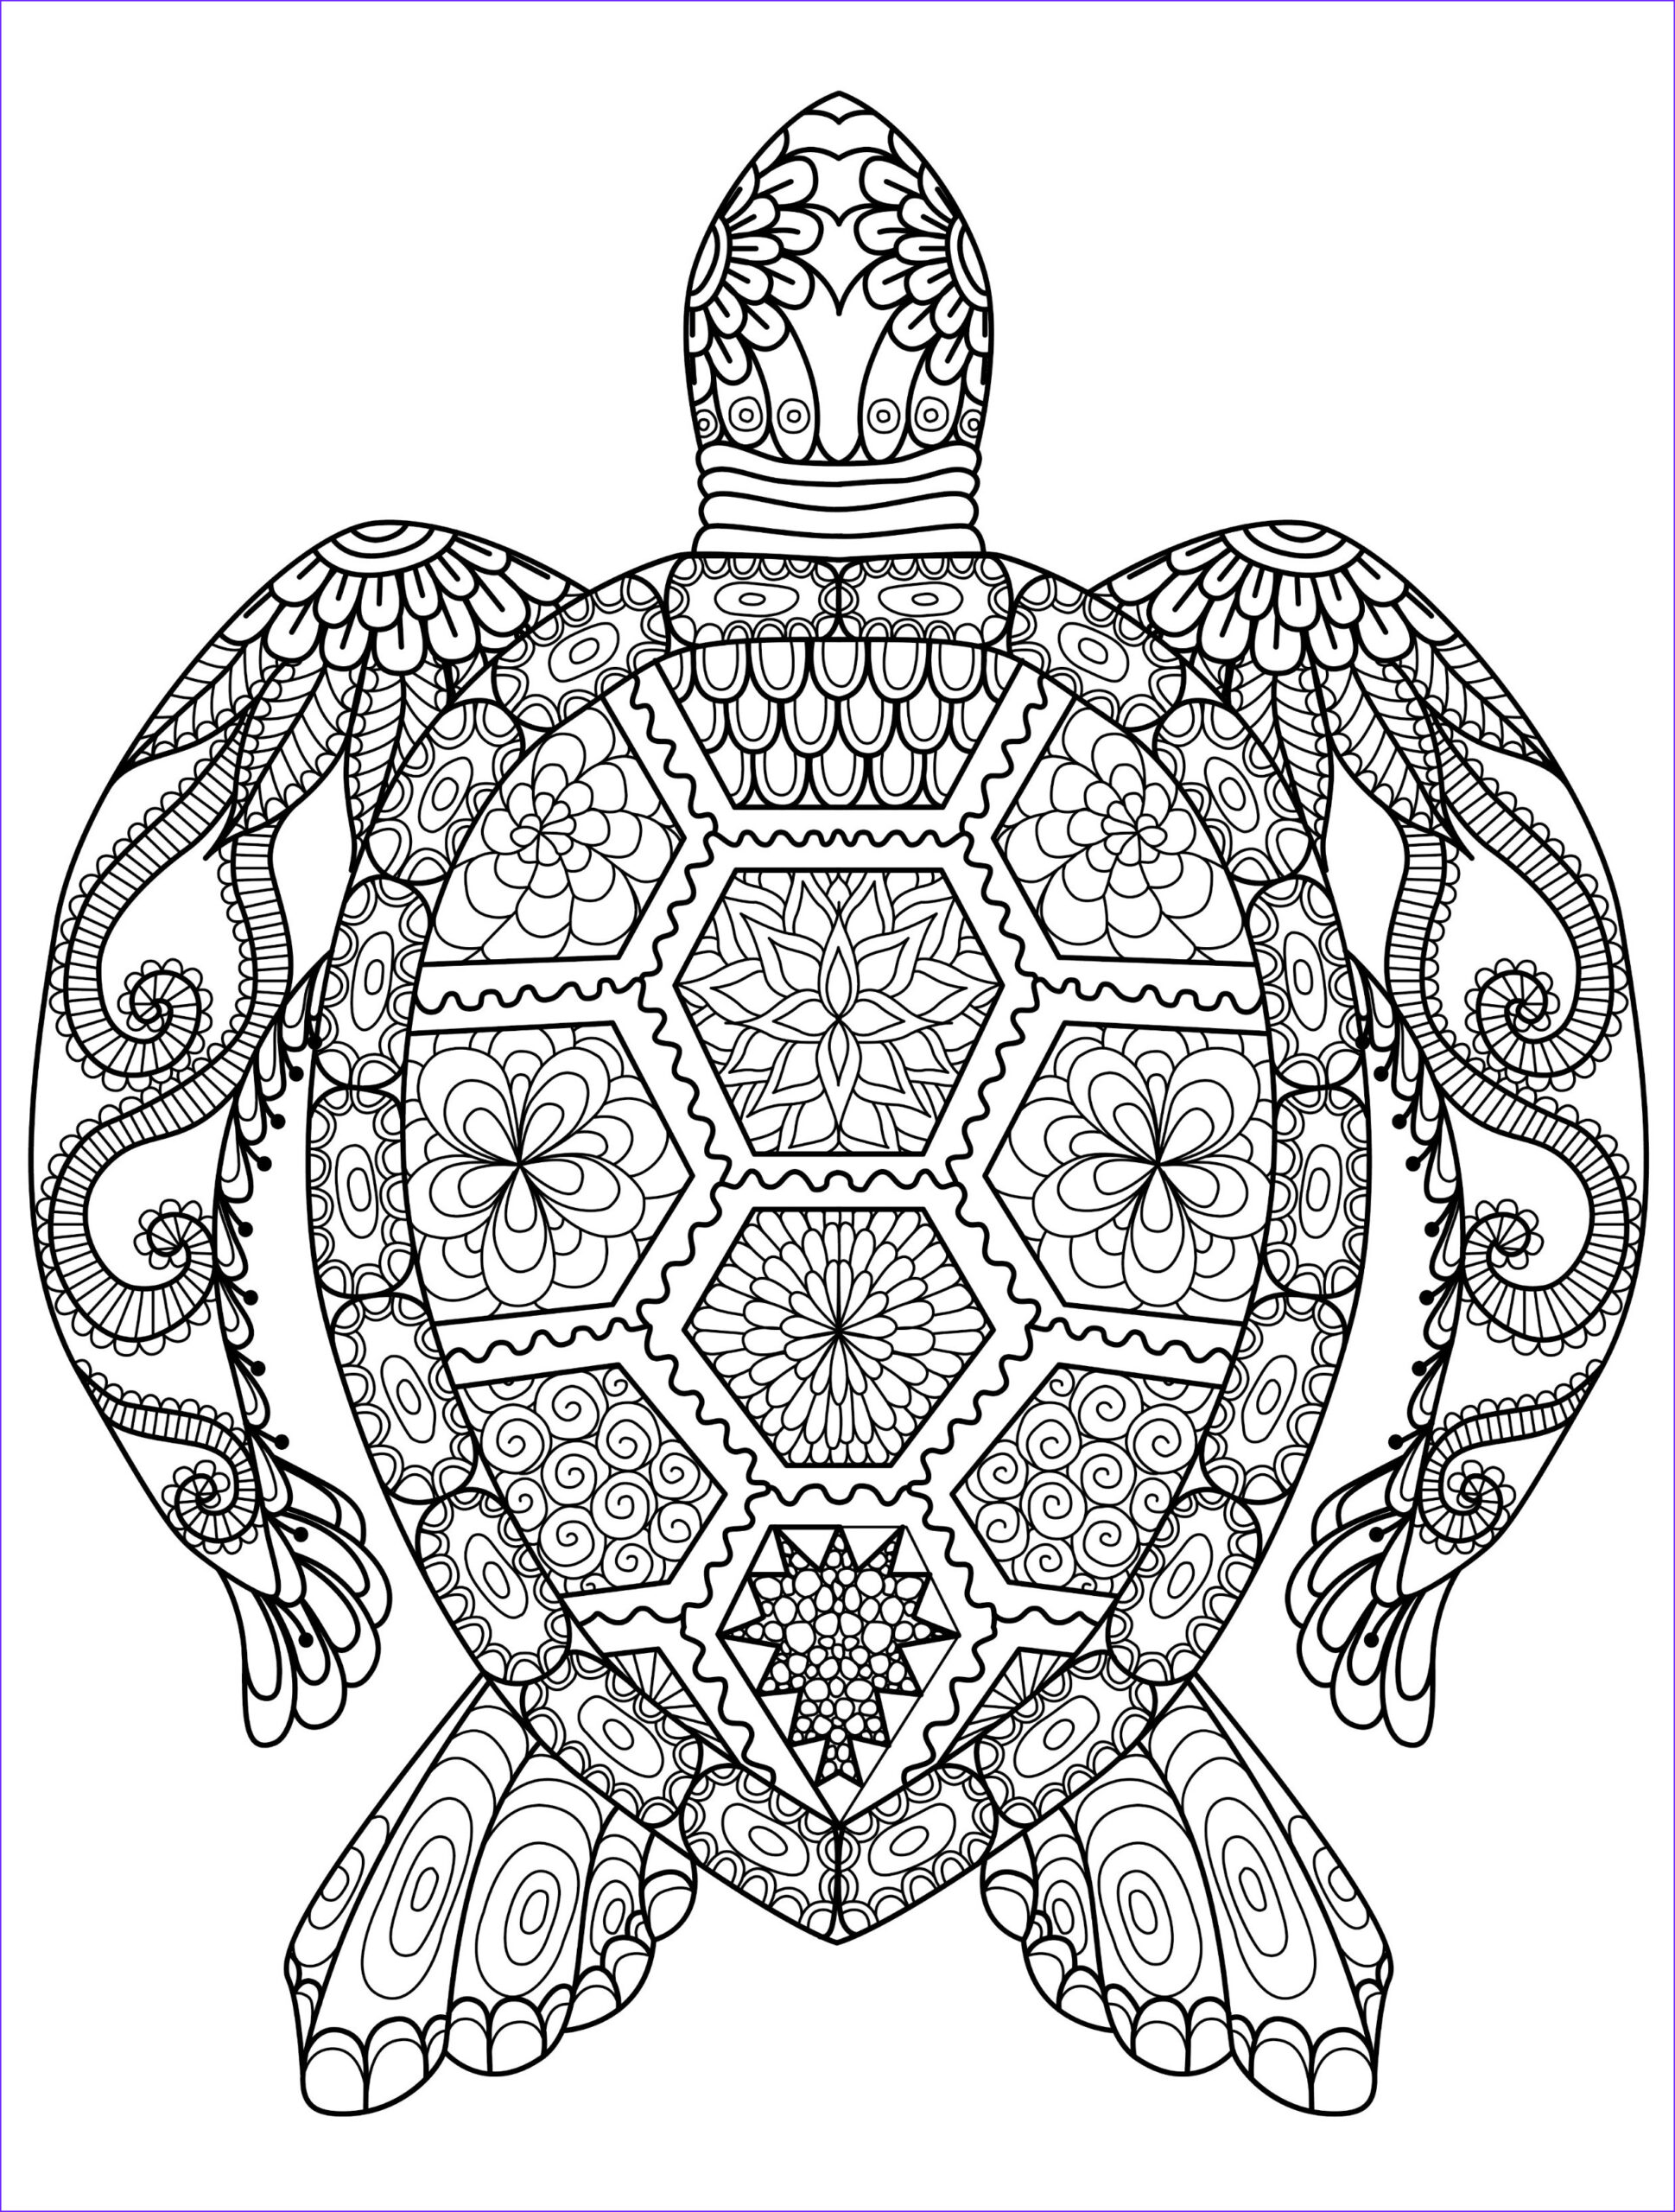 Coloring Pages for Adults Elegant Image Adult Coloring Pages Animals Best Coloring Pages for Kids